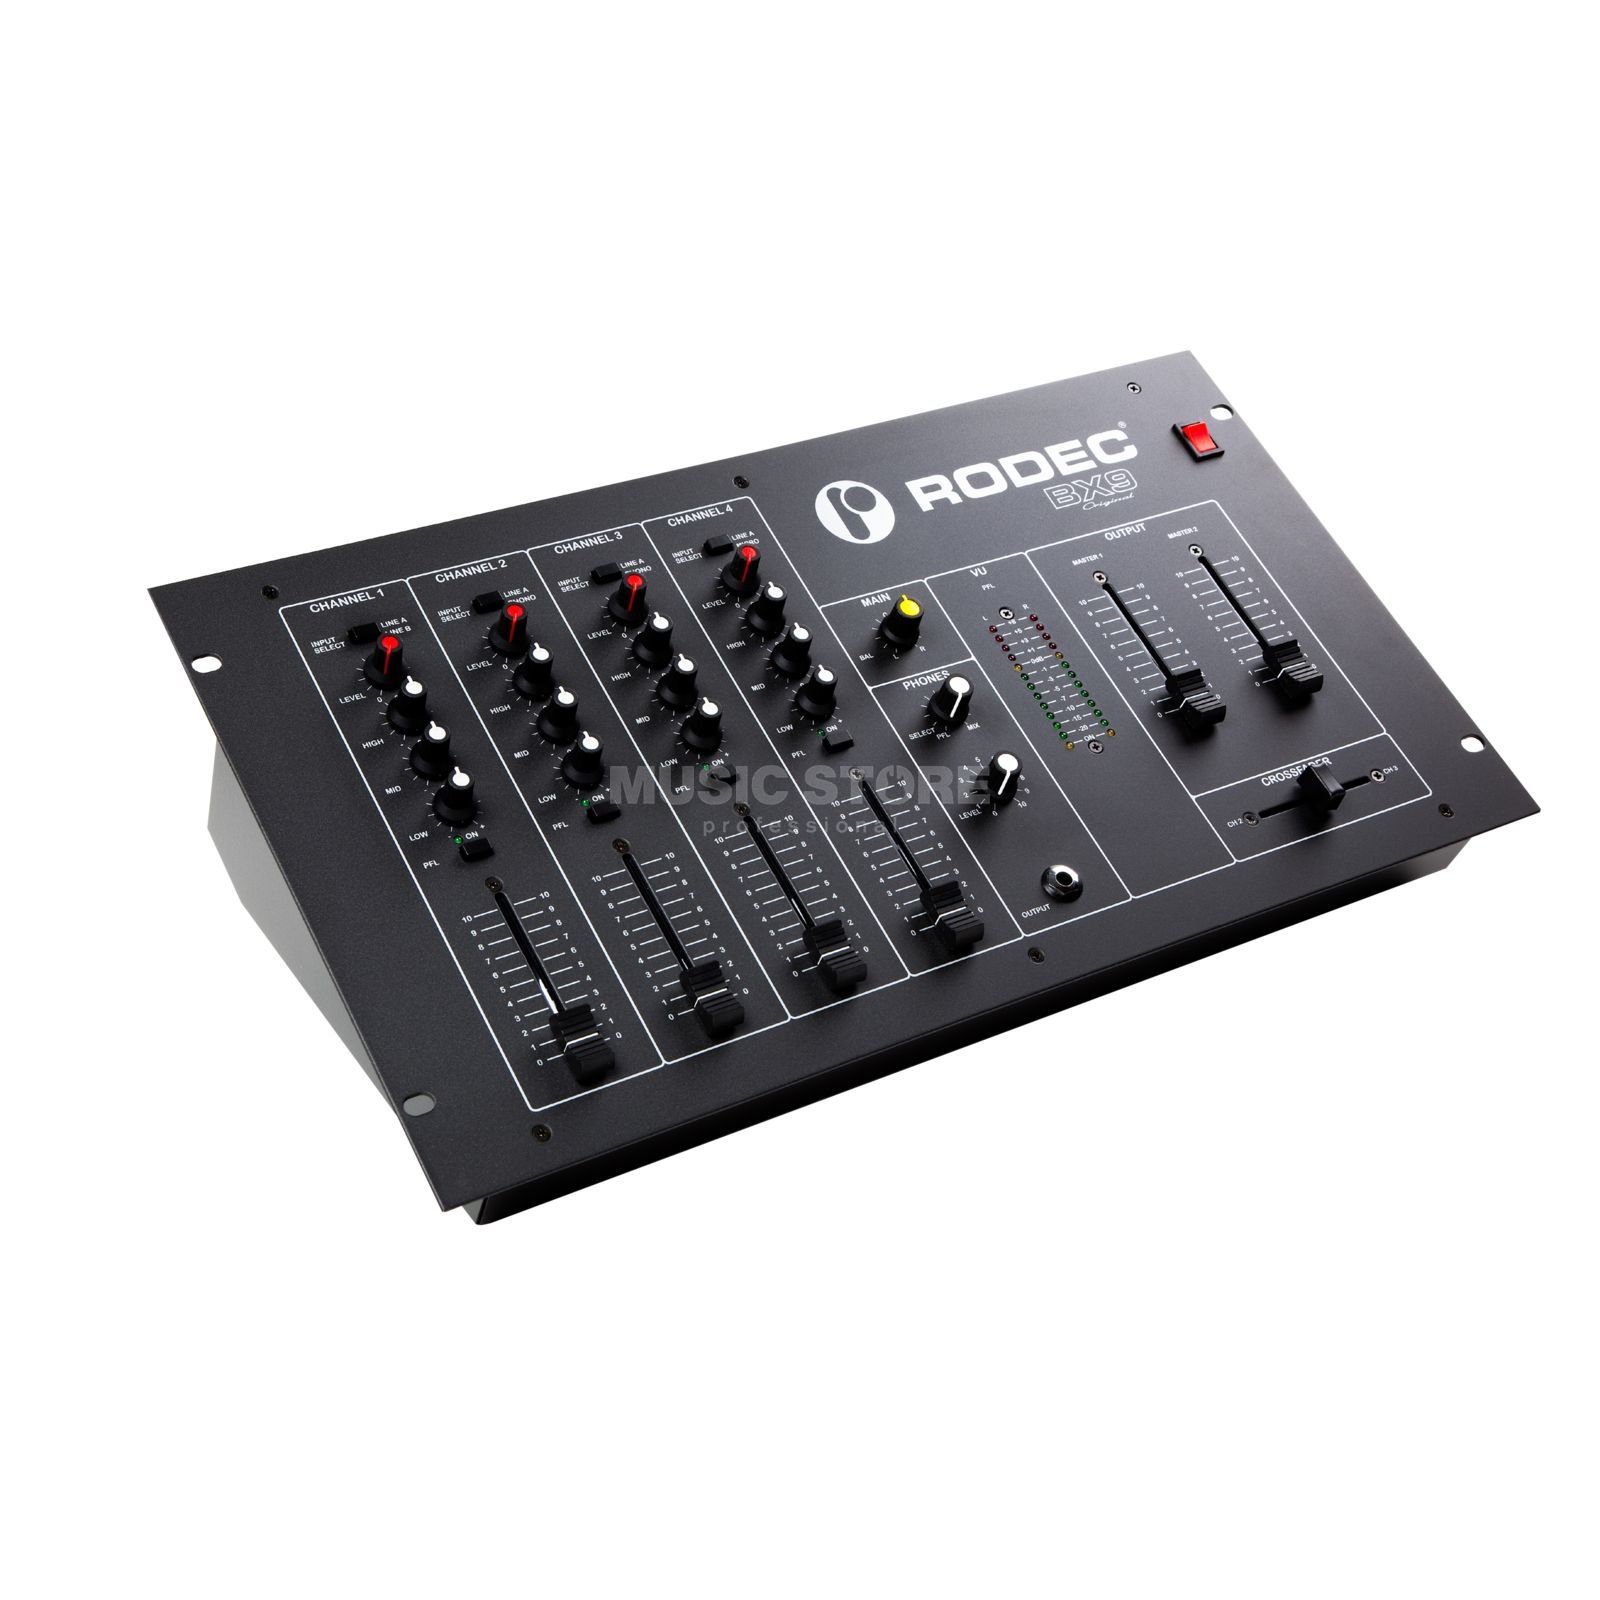 "Rodec BX9 Original 4-Channel Club Mixer, 19"" Product Image"